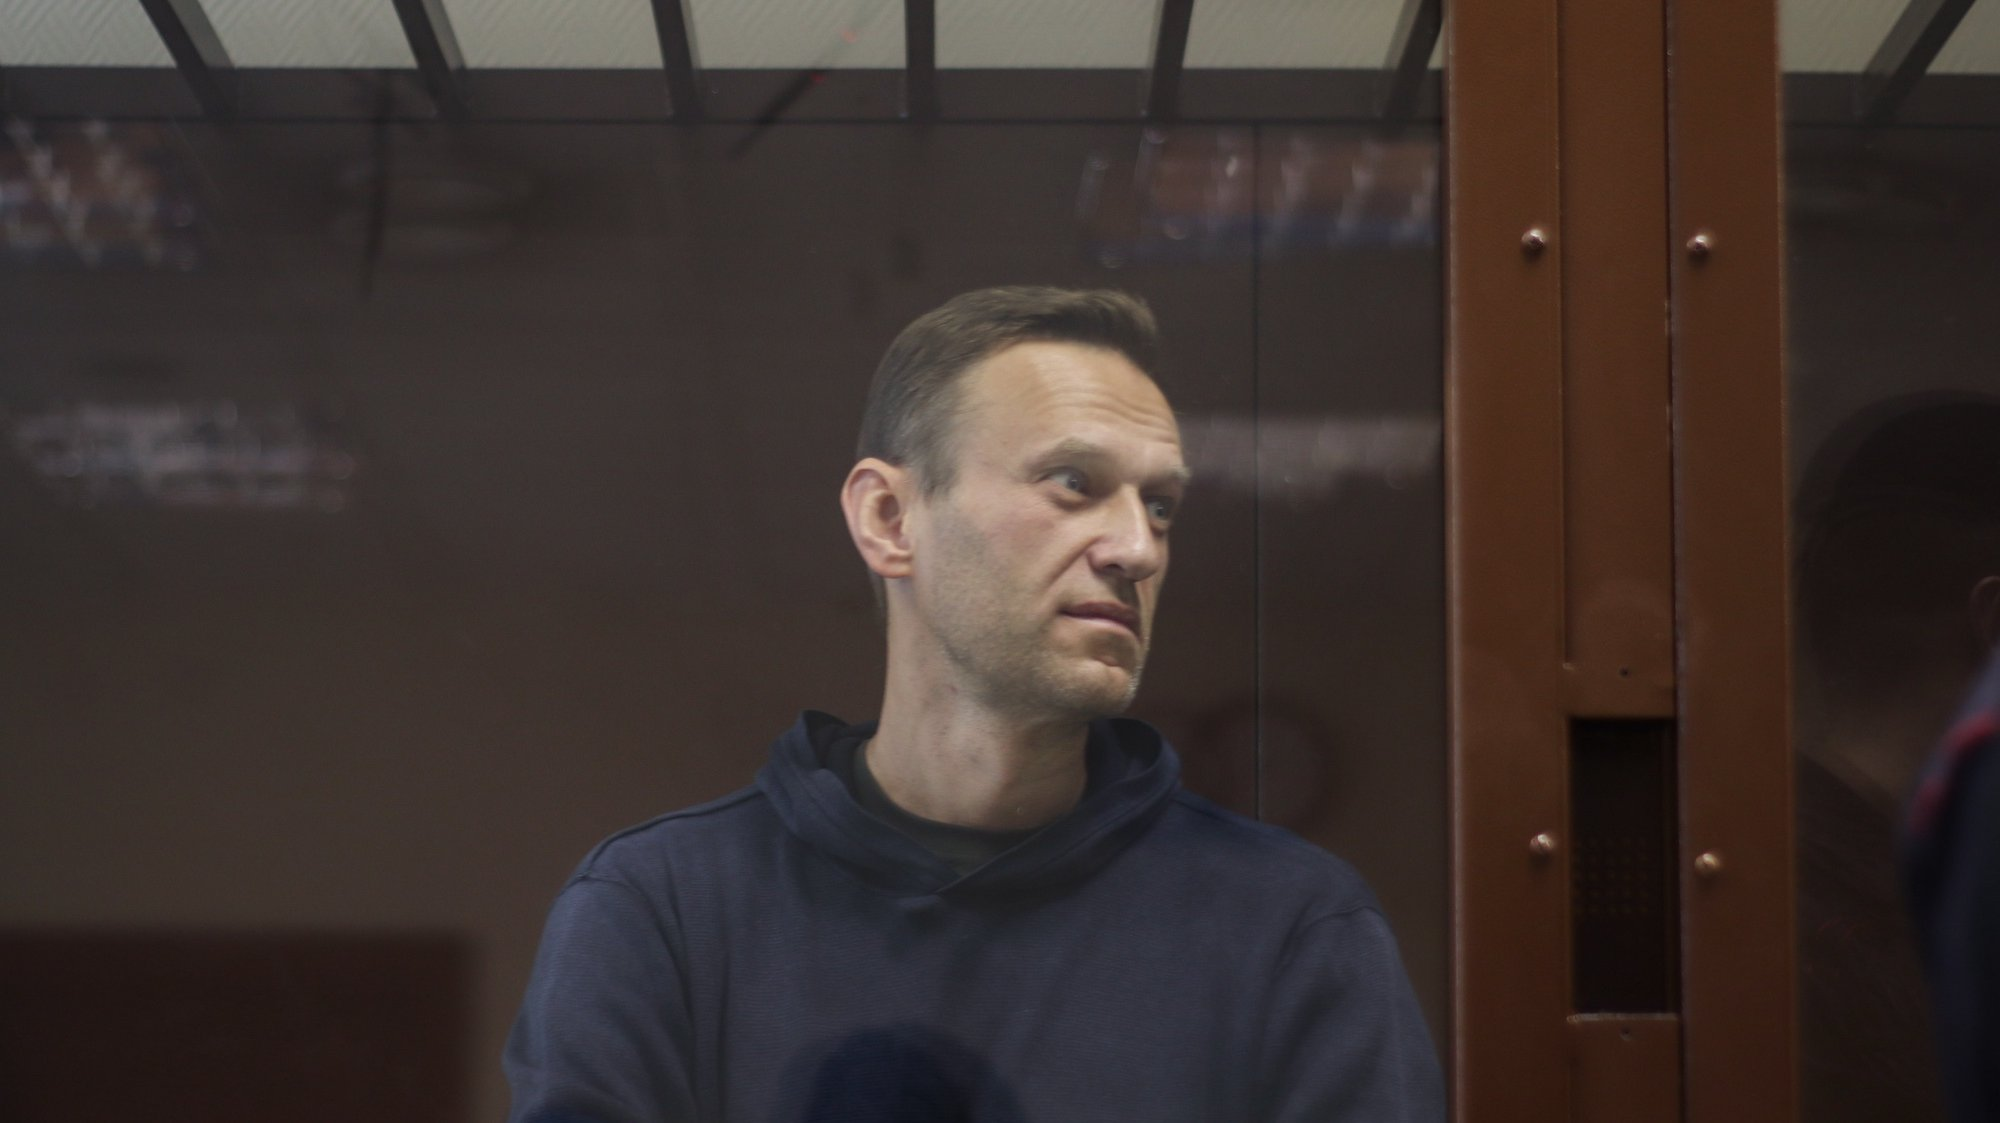 epa08988498 A handout photo made available by the Press Service of the Babushkinsky district court shows Russian opposition leader Alexei Navalny during a hearing of a case on slander charges in Moscow, Russia, 05 February 2021. In June 2020 the Russian Investigative Committee opened a criminal case against Alexei Navalny on charges of slander against WWII veteran Ignat Artemenko after Navalny's comment about a video promoting the amendments to the Russian Constitution.  EPA/BABUSHKINSKY DISTRICT COURT PRESS SERVICE / HANDOUT  HANDOUT EDITORIAL USE ONLY/NO SALES